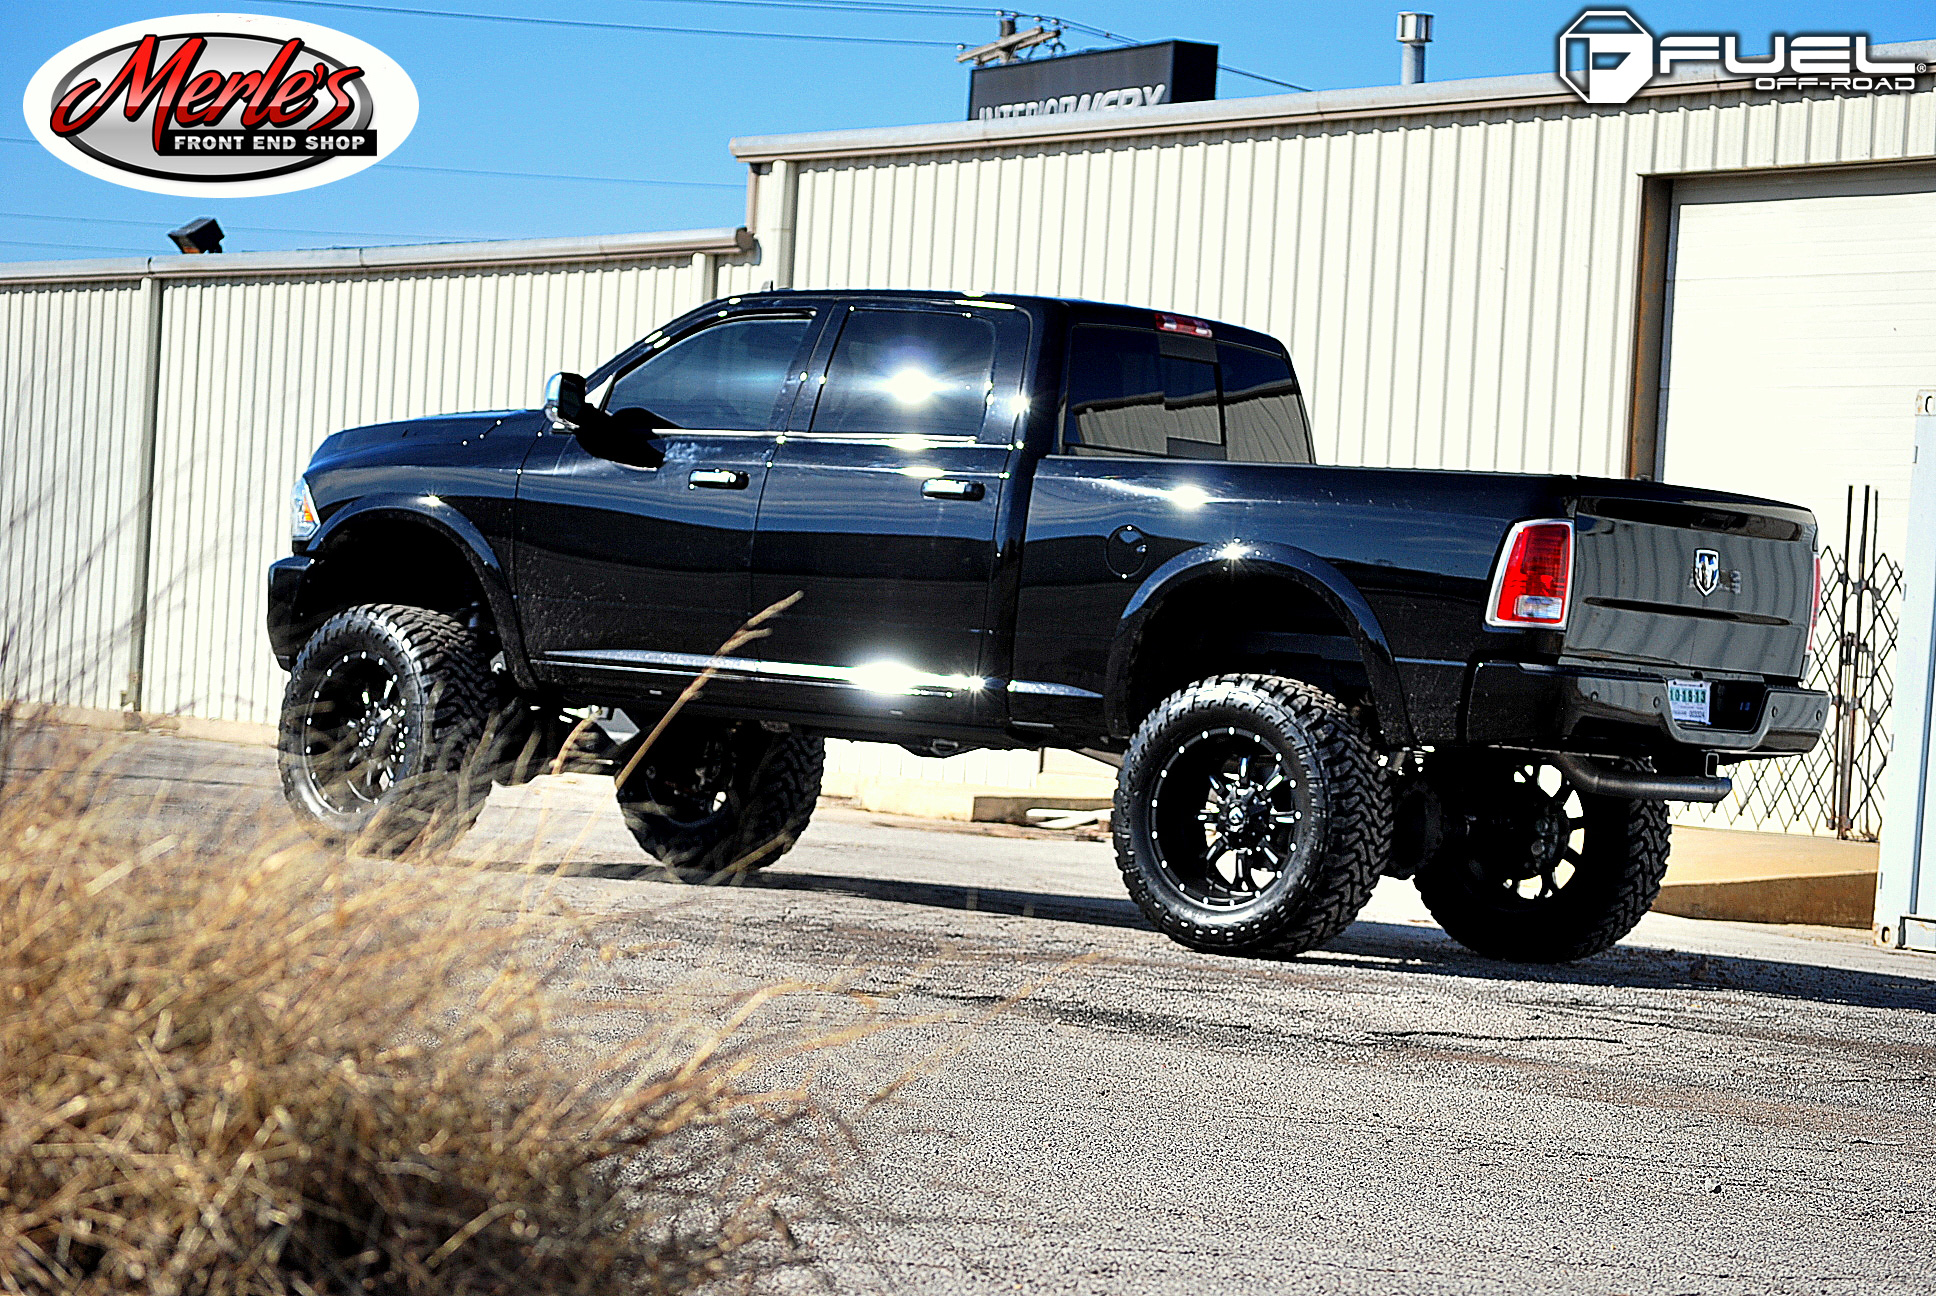 hight resolution of dodge ram 2500 on fuel deep lip krank d517 wheels